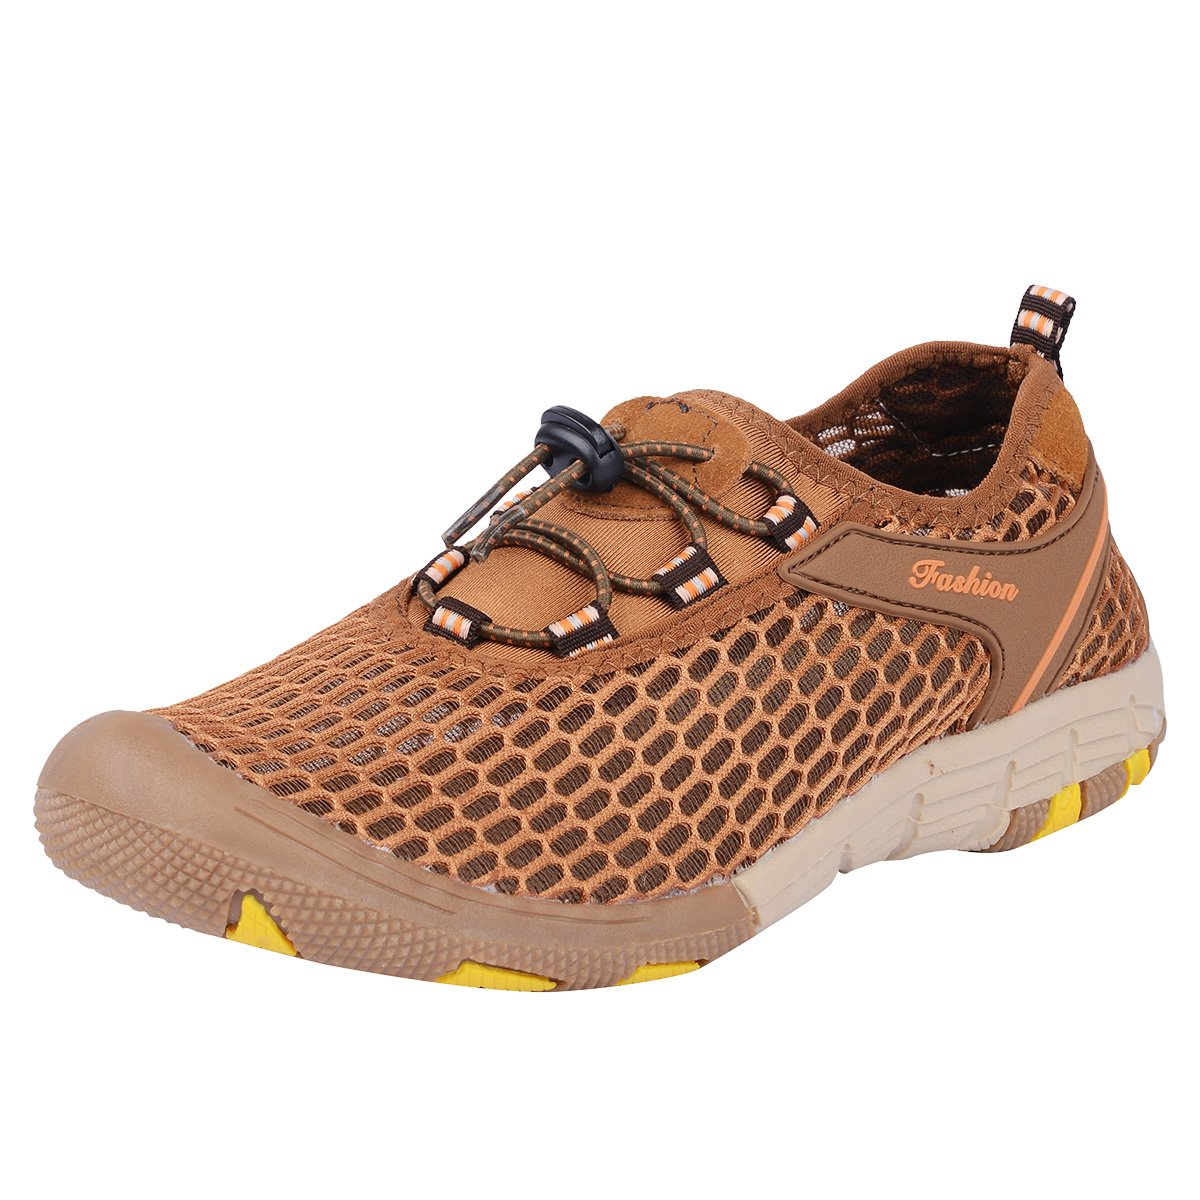 Neoyowo Mens Quick Drying Aqua Water Shoes for Hiking Beach Walking(Light Brown 45 EU)